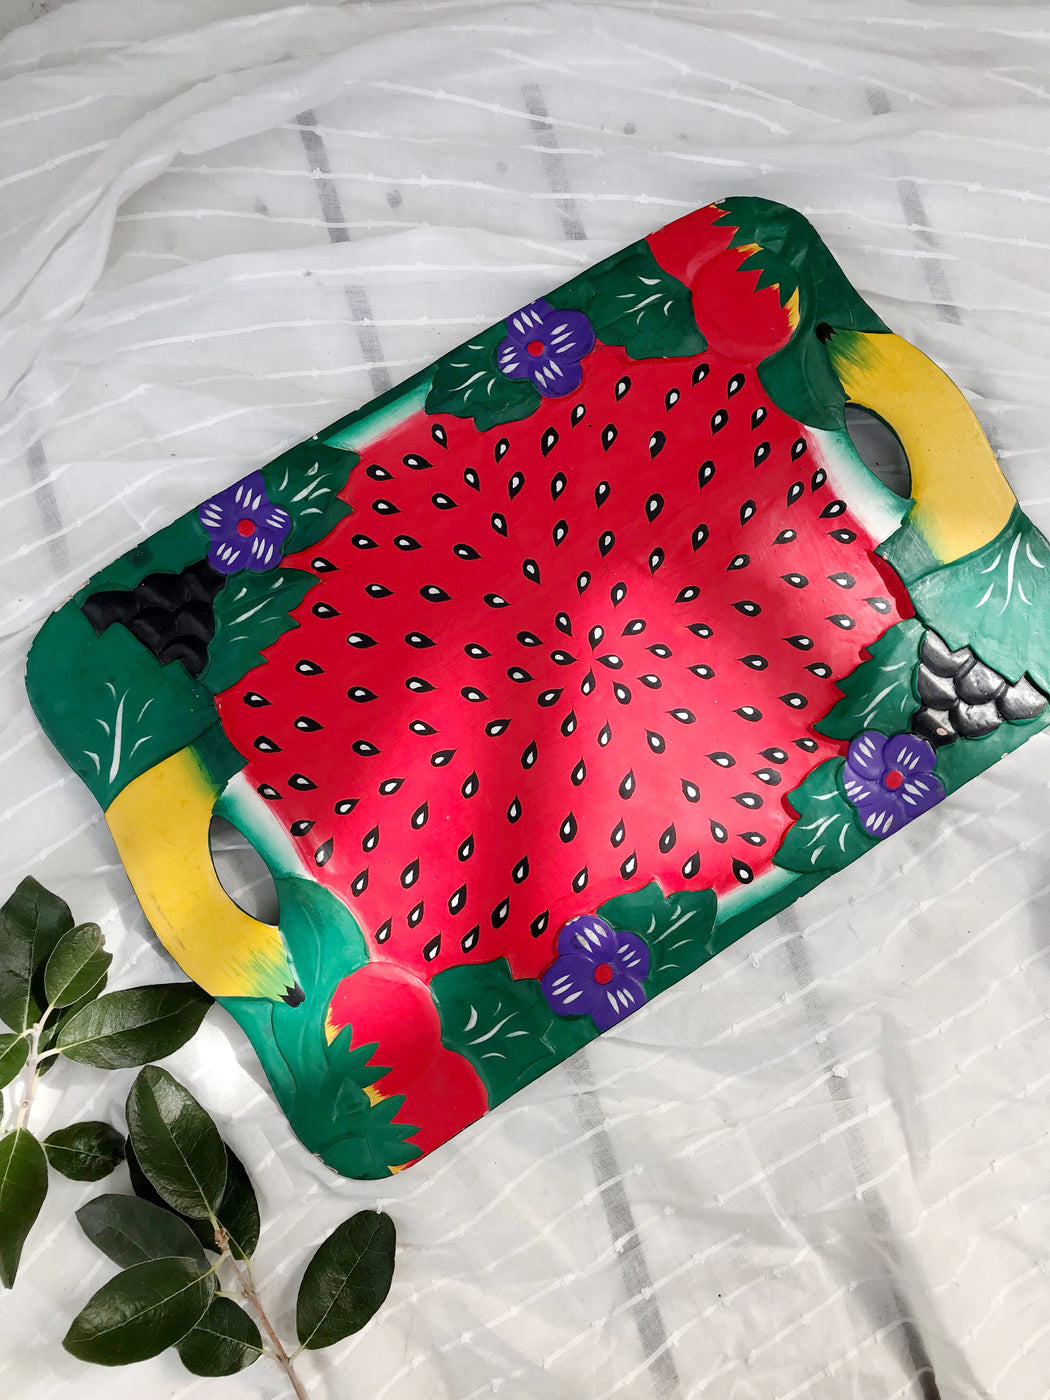 Watermelon Fruit Salad Serving Tray